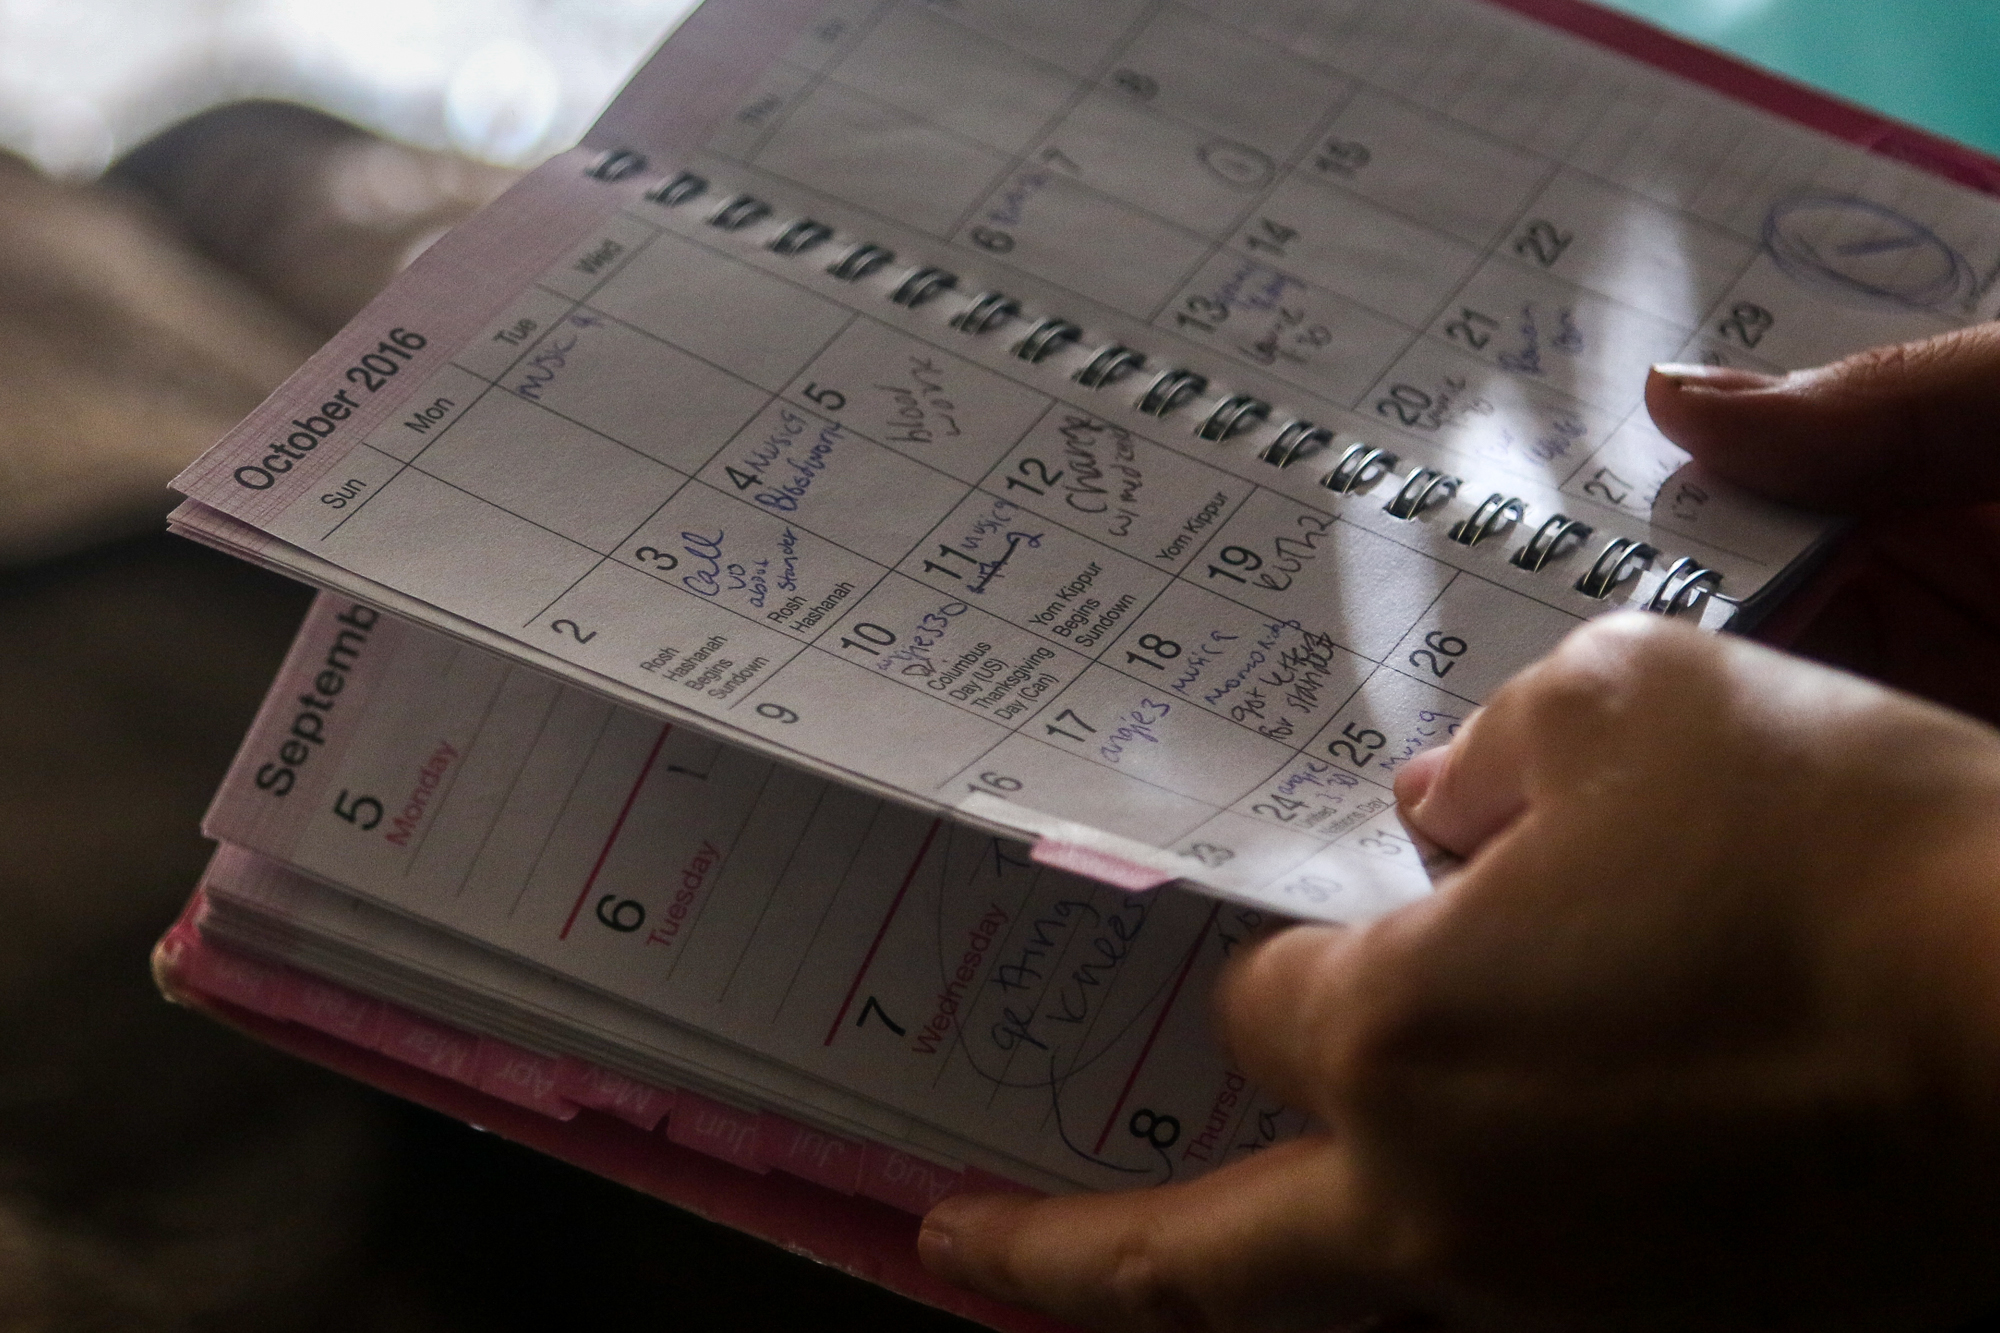 On January 28, 2019, Brittany Cabrera flips through the calendar where she has been chronicling her daughter Penny's seizures since they began in 2016.